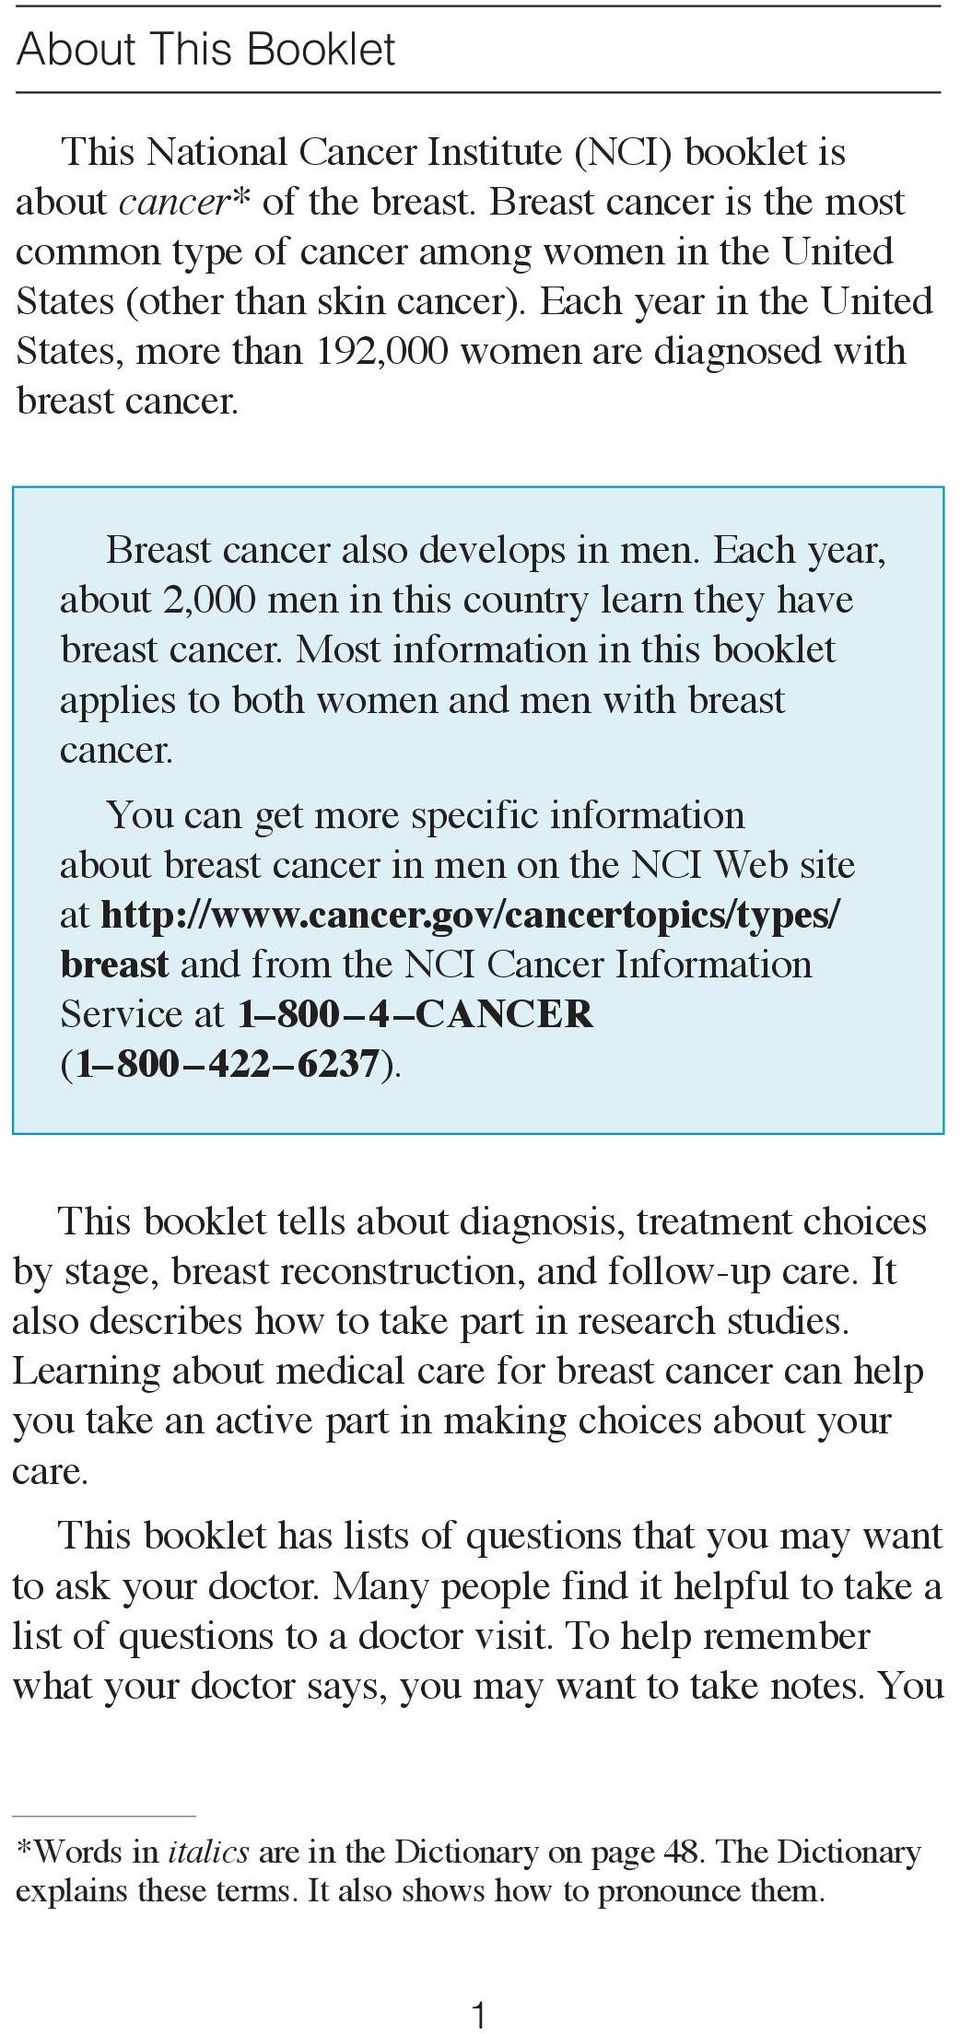 Breast cancer also develops in men. Each year, about 2,000 men in this country learn they have breast cancer. Most information in this booklet applies to both women and men with breast cancer.